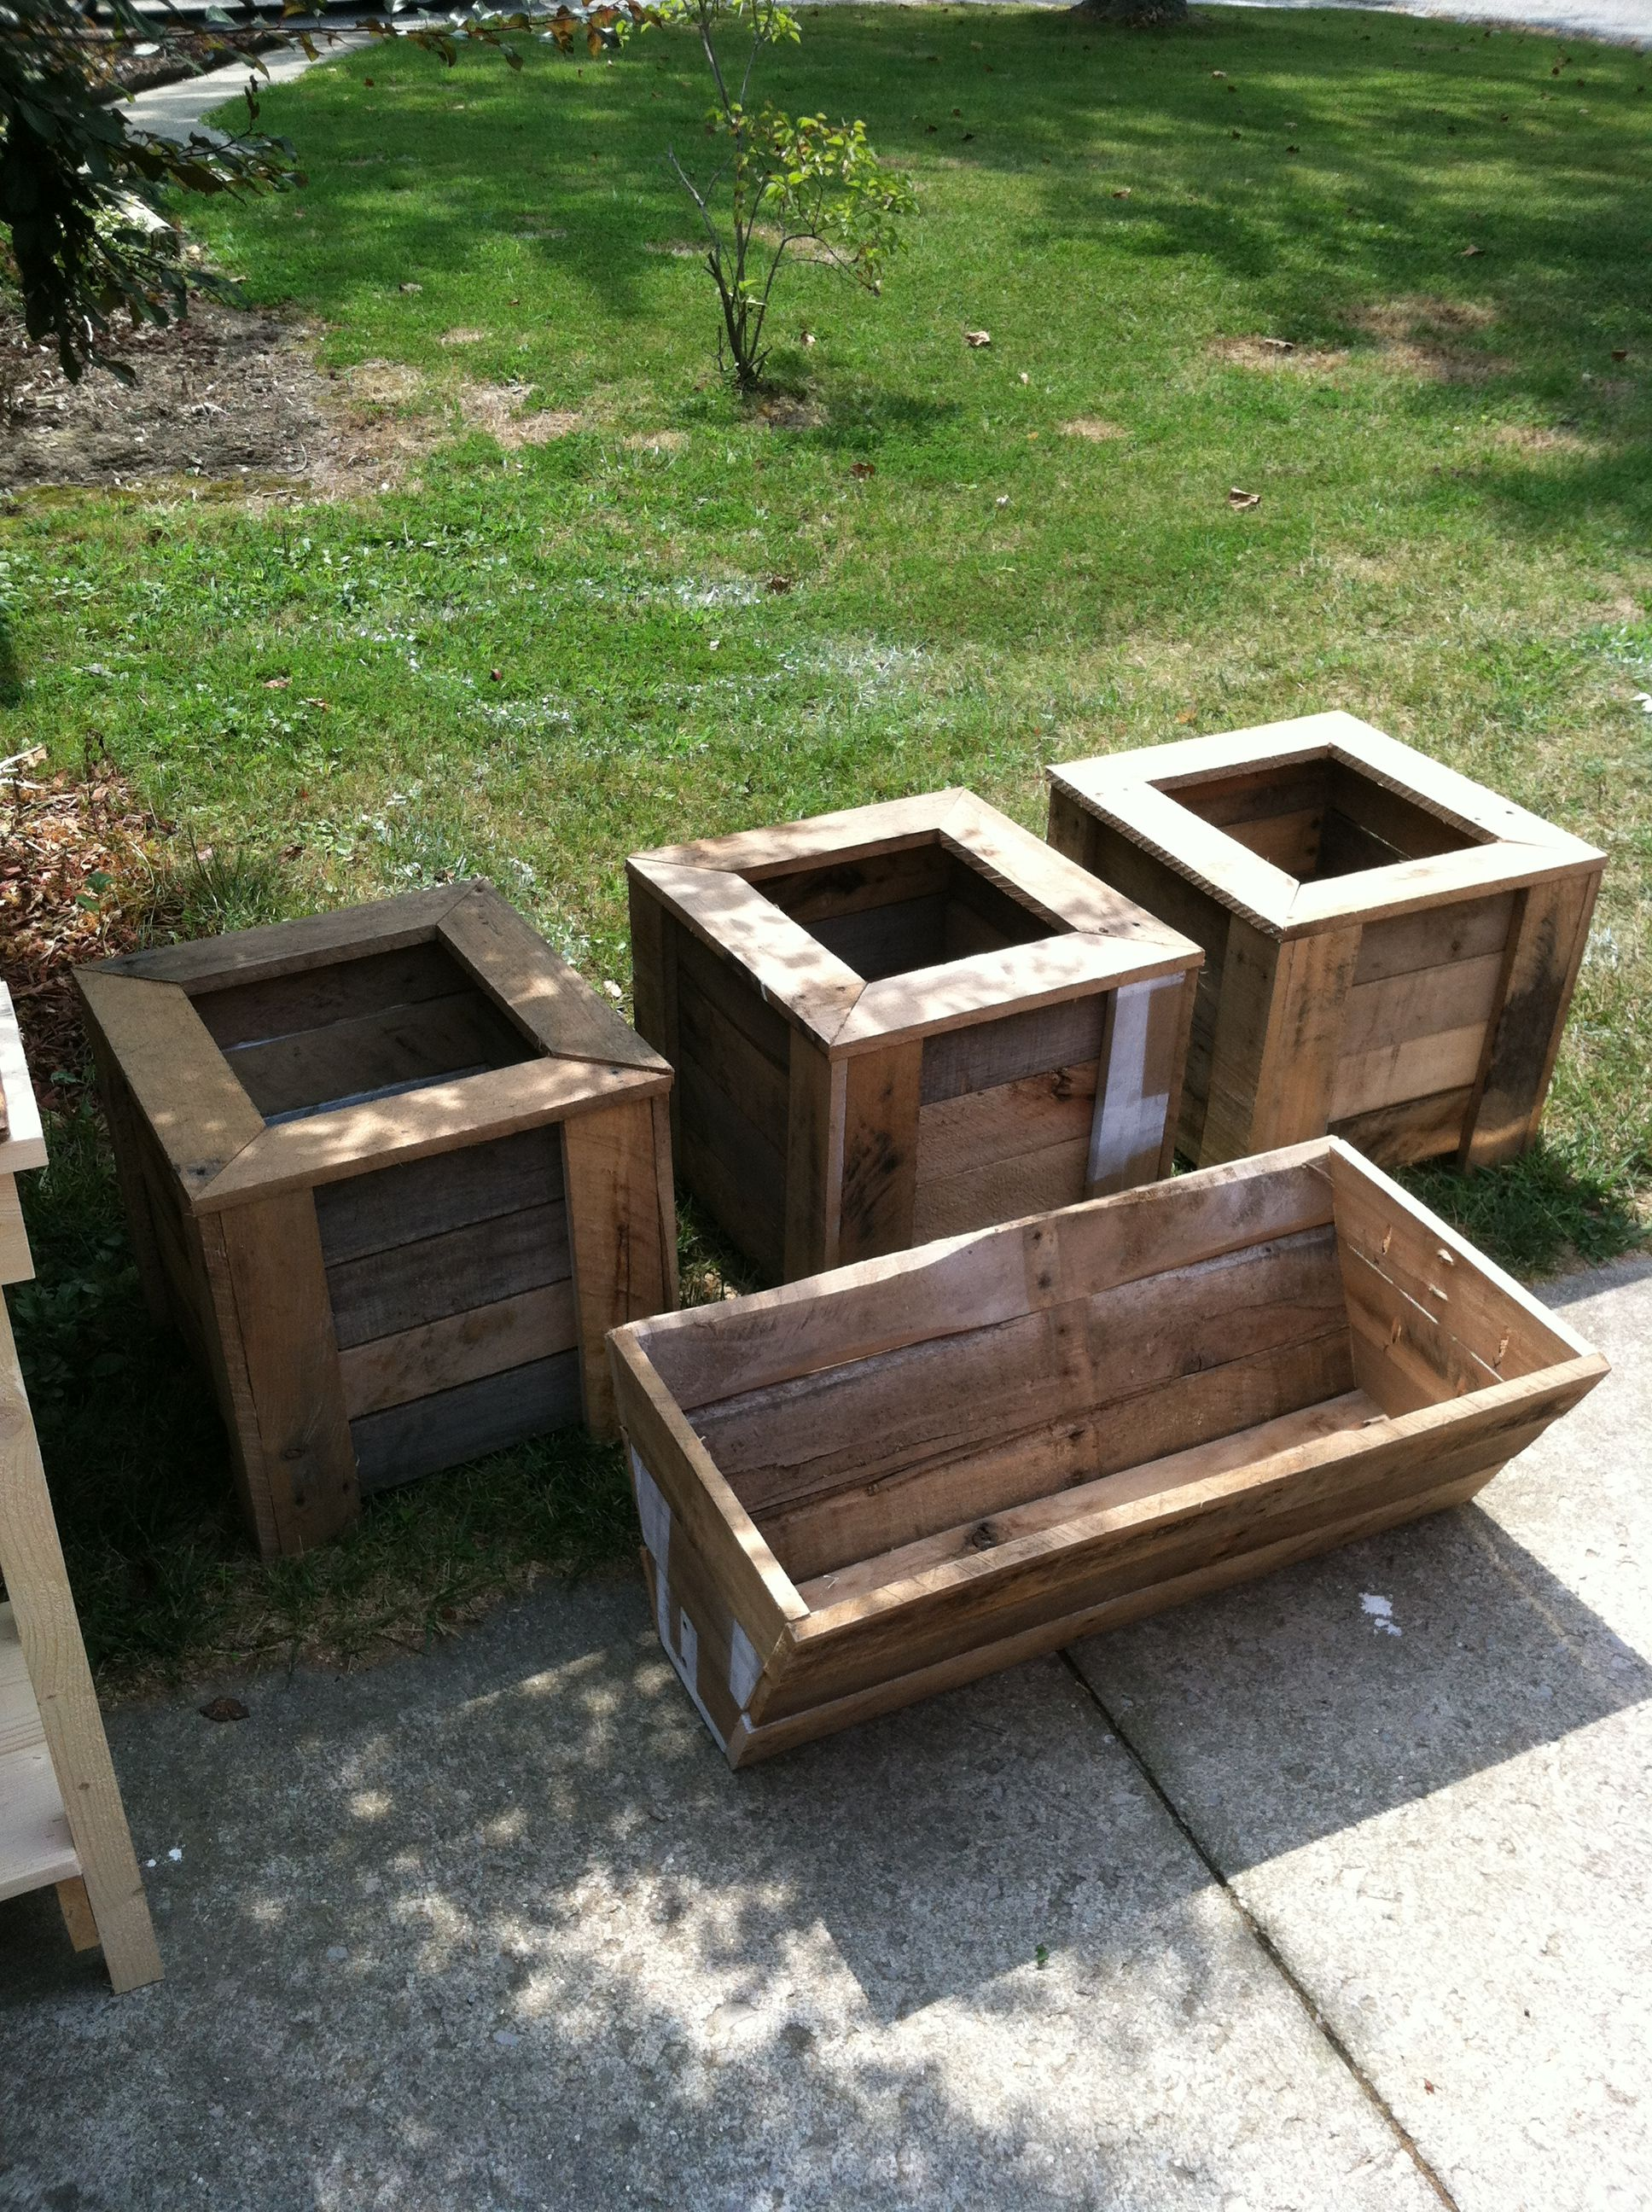 Diy Planter Box From Pallets Pallet Planter Boxes Outdoor Pallet Furniture Pinterest